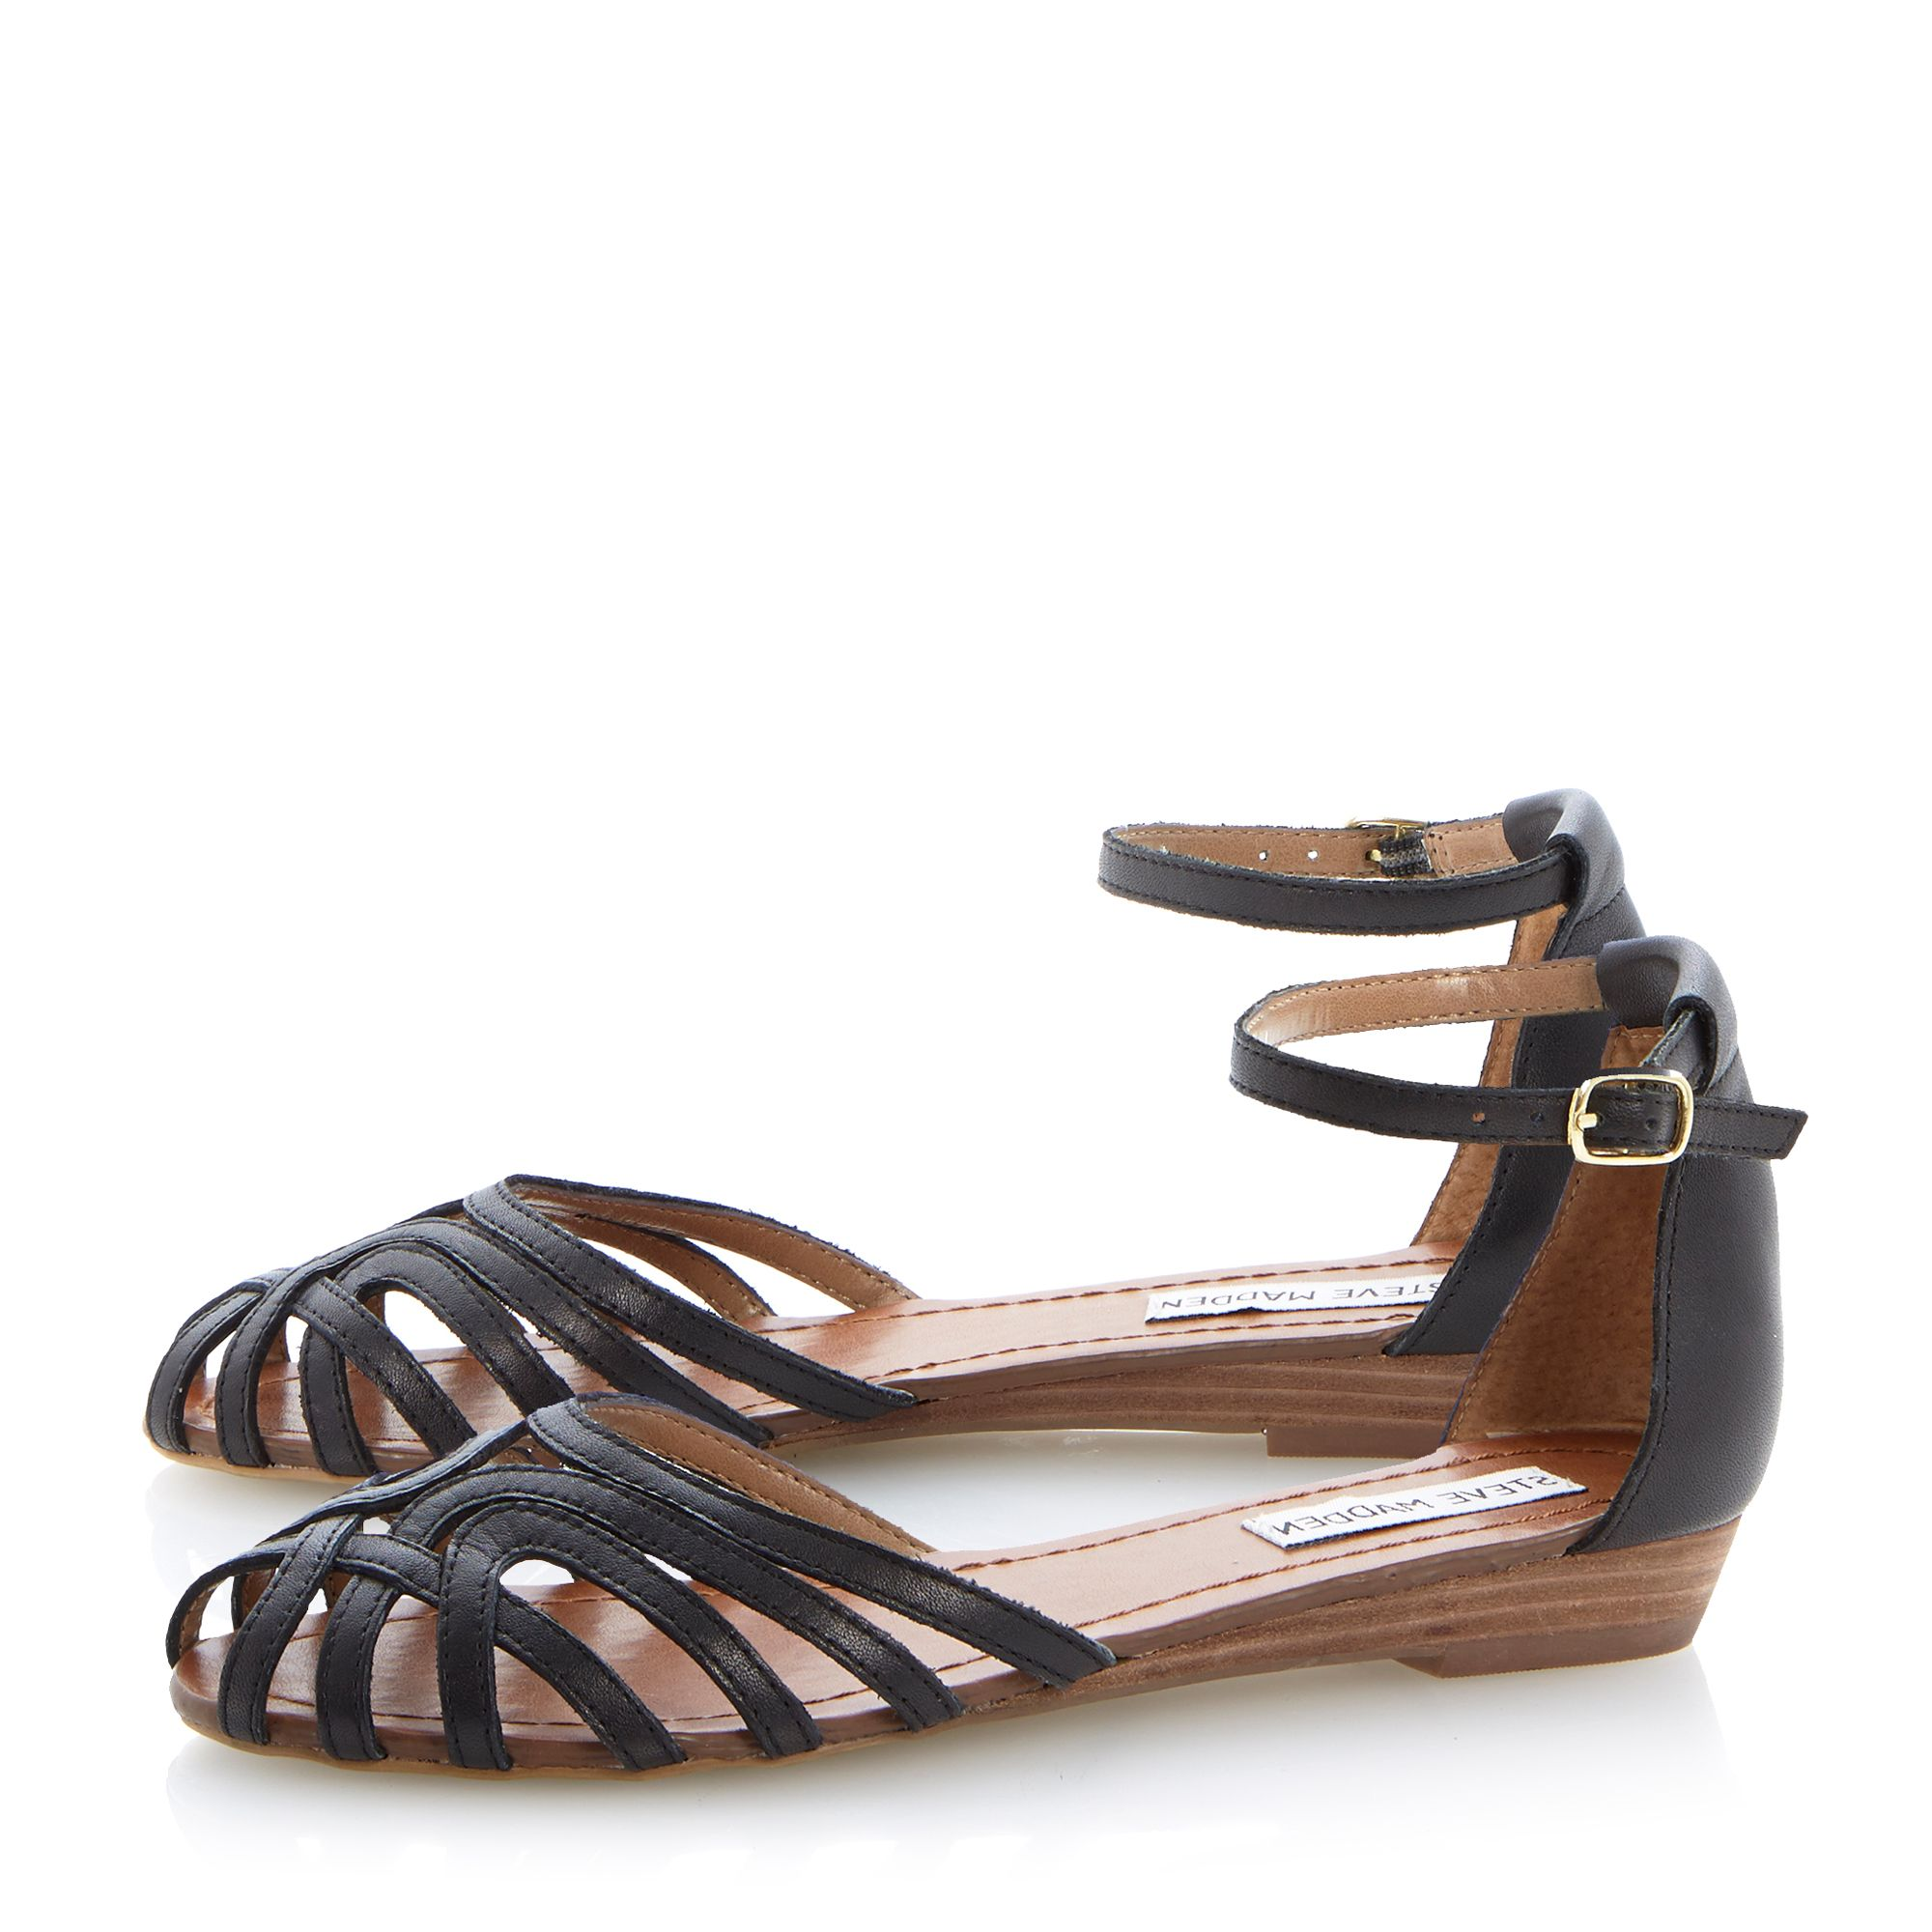 Scoorpin 2 part sandals